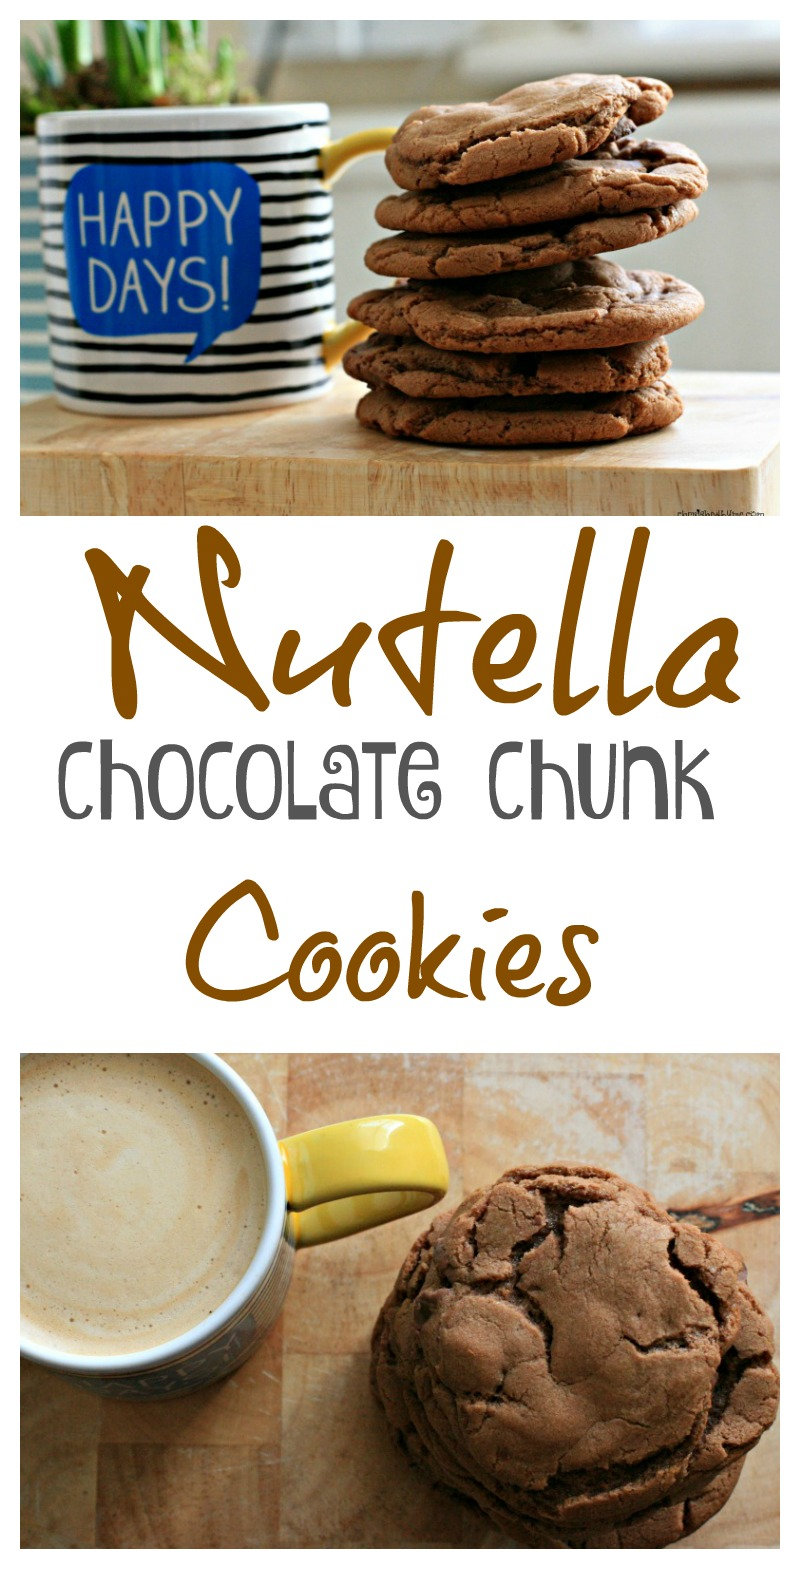 Nutella Chocolate Chunk Cookies- cherished by me